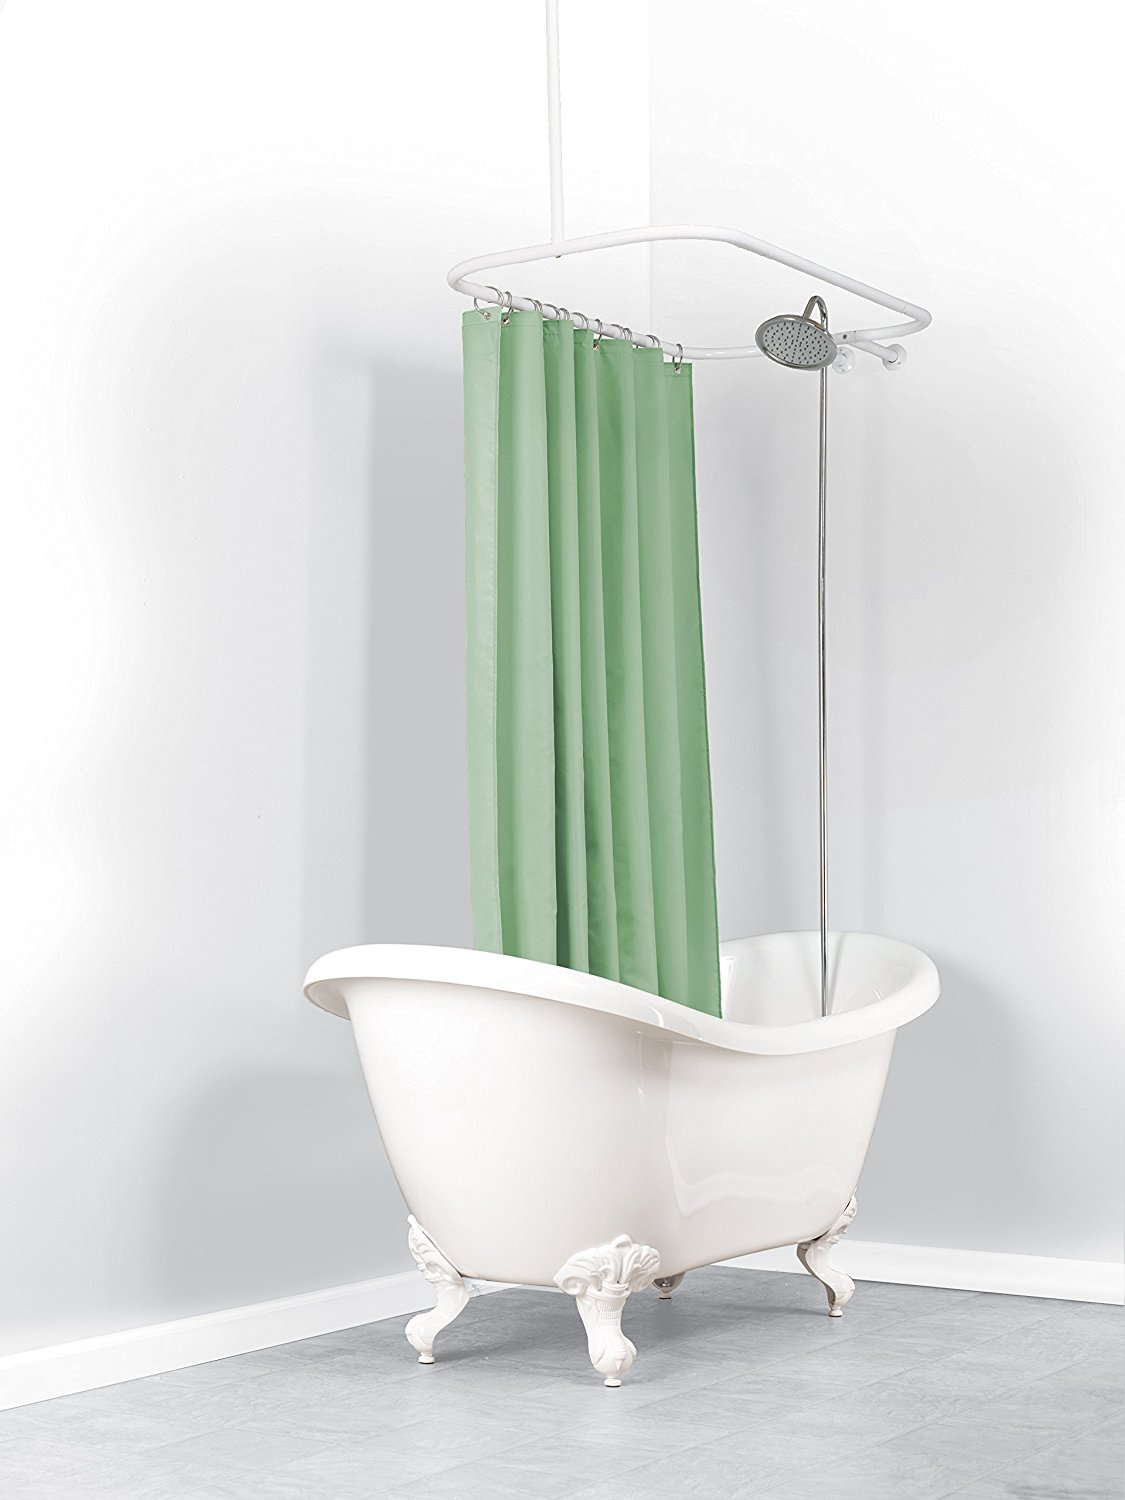 Curtain Shower Curtains For Round Tubs Clawfoot Tub Shower